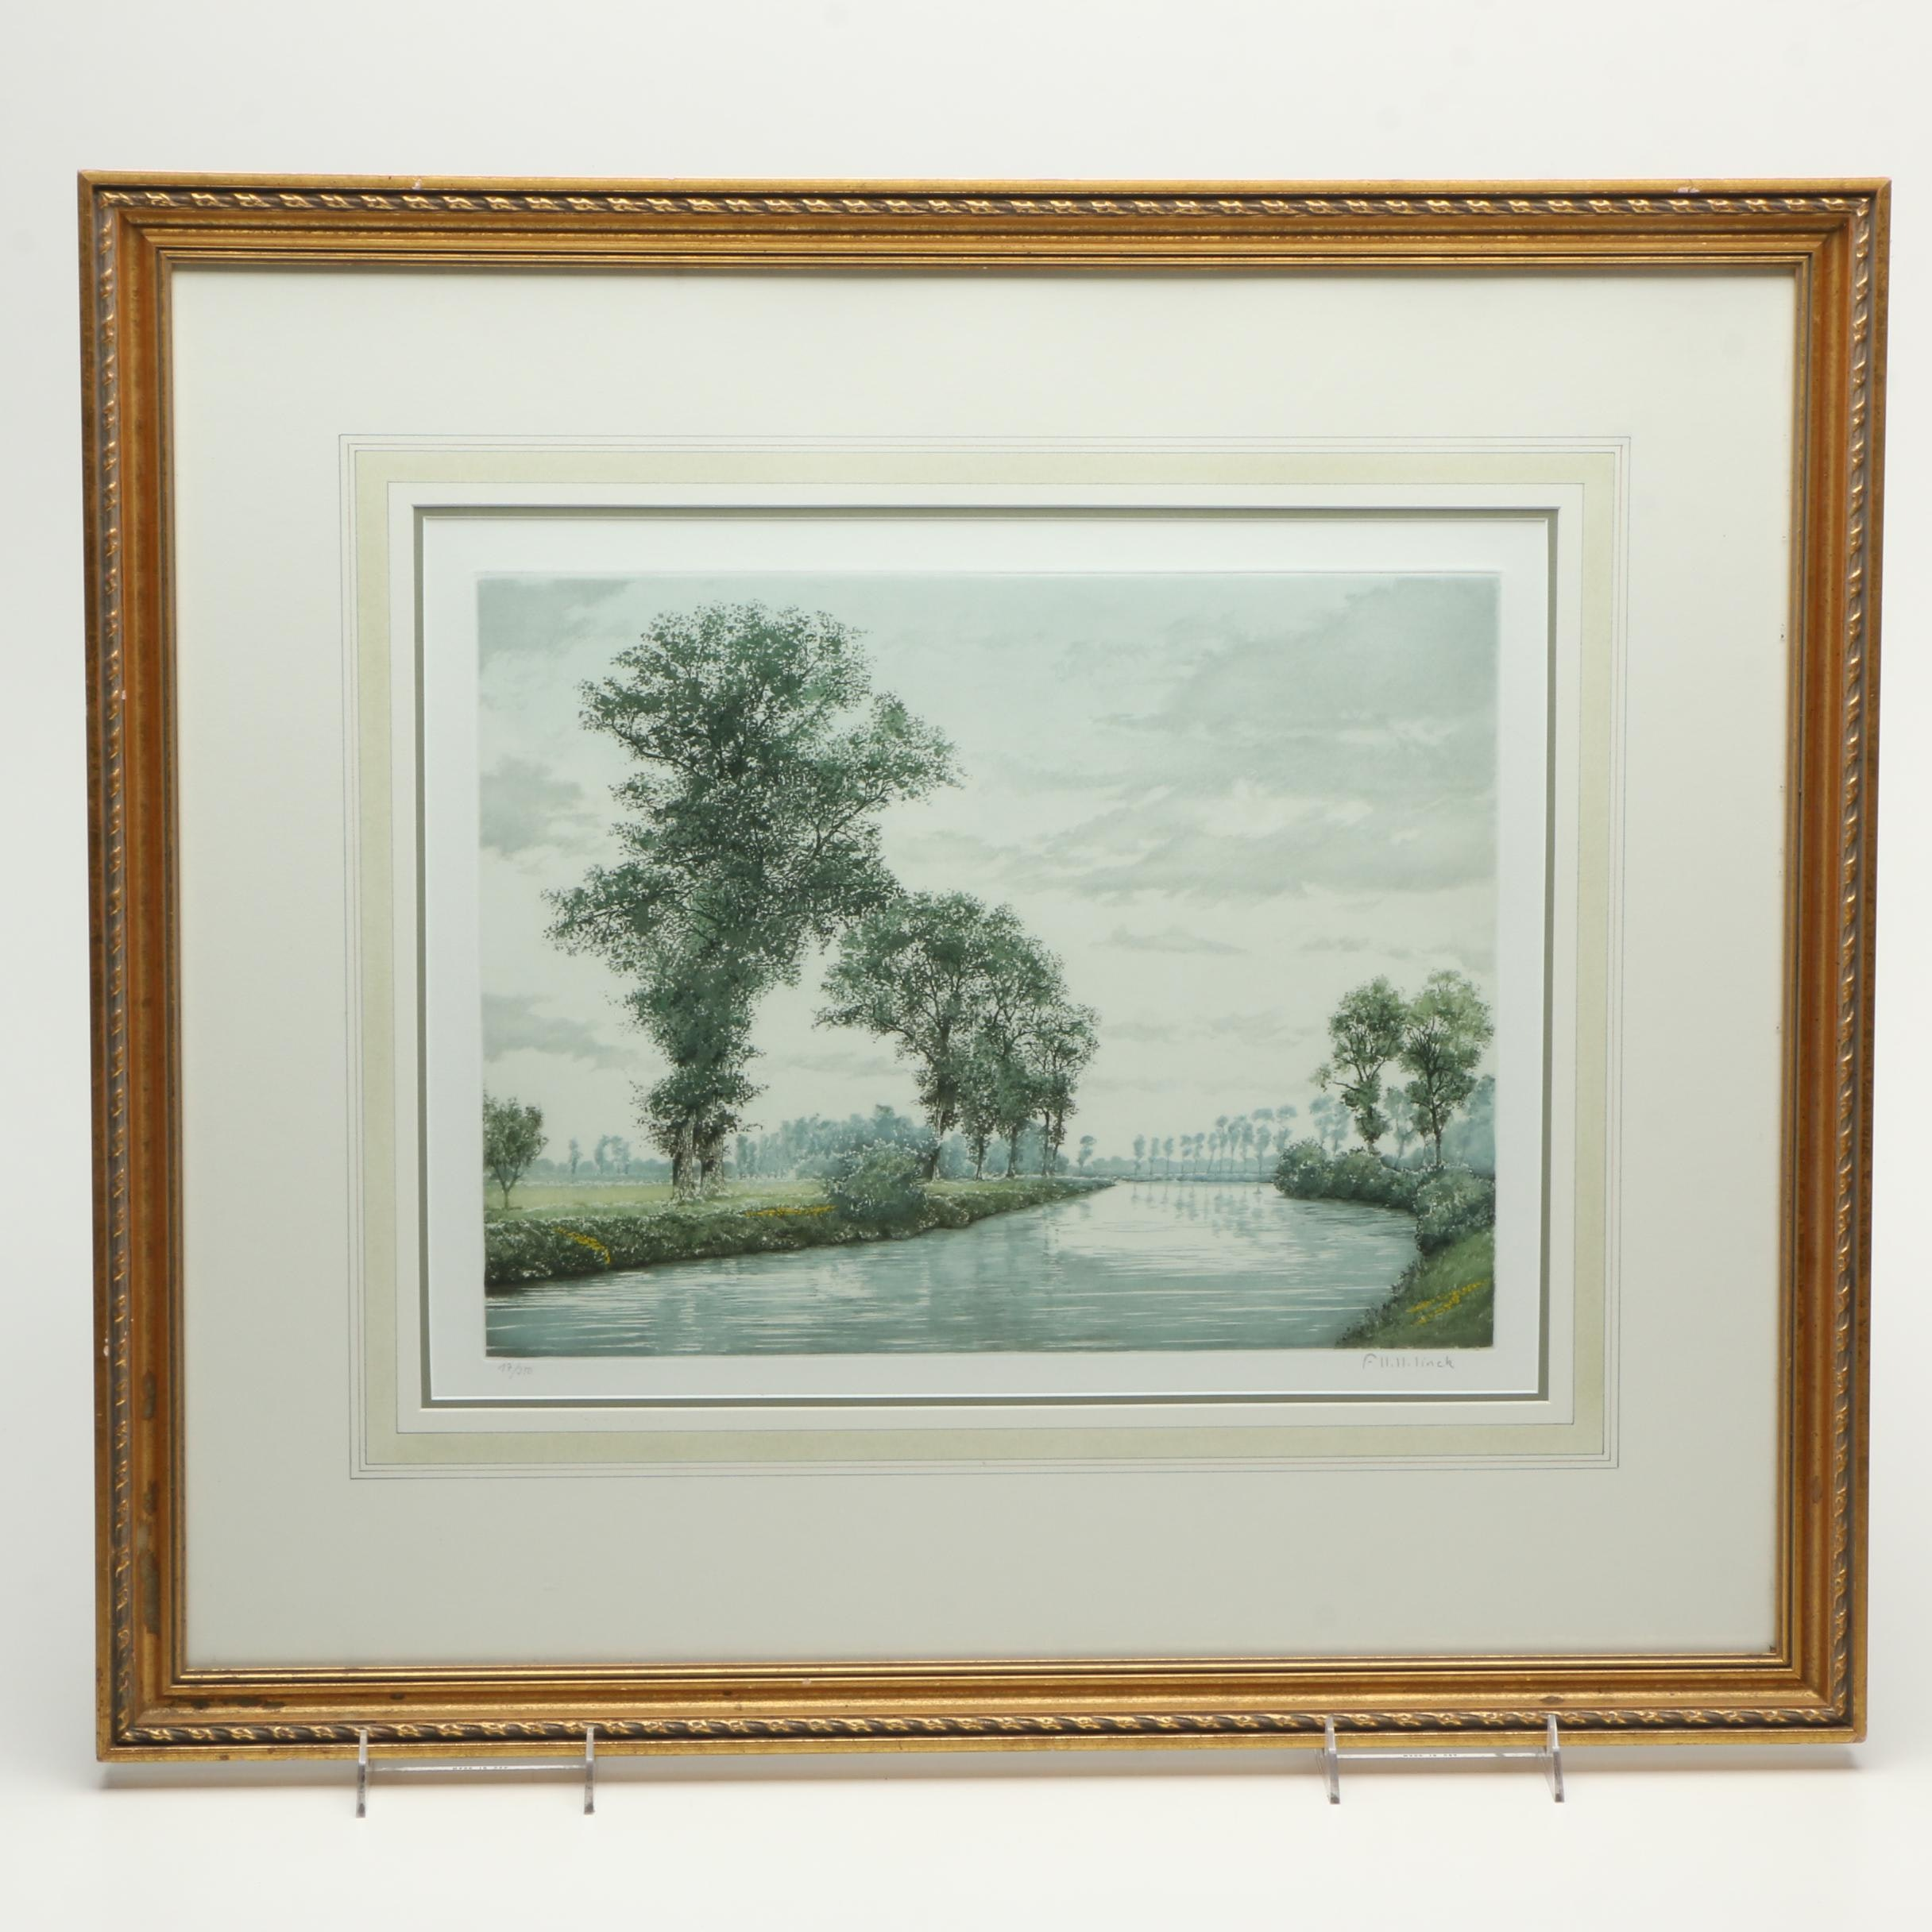 Linck Limited Edition Etching with Aquatint of Tree Lined River Landscape